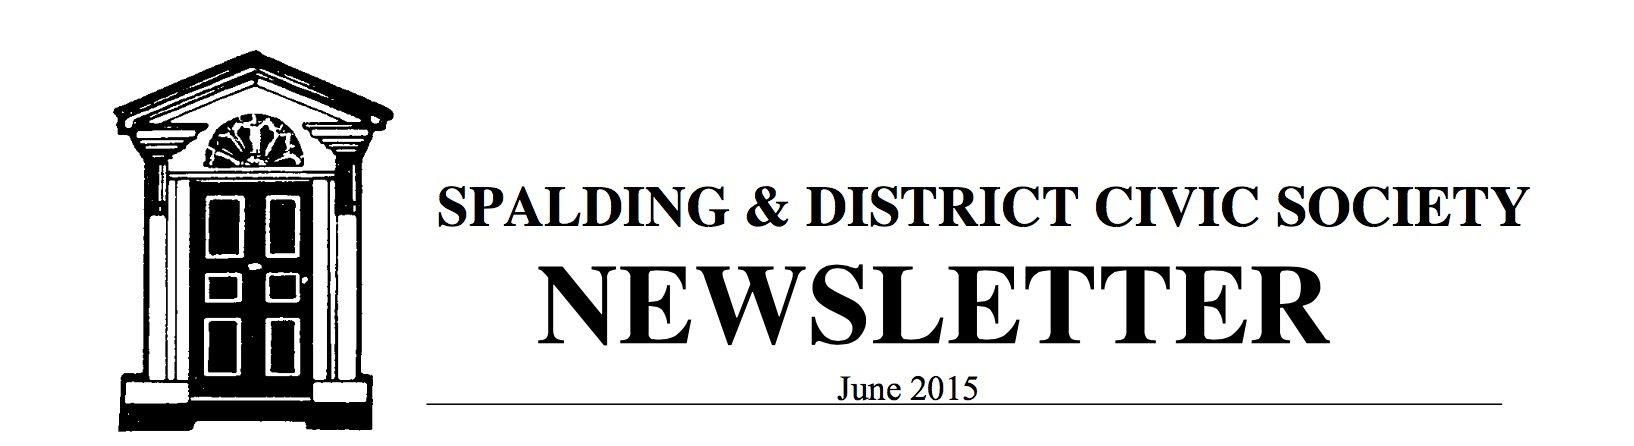 Spalding & District Civic Society Newsletter